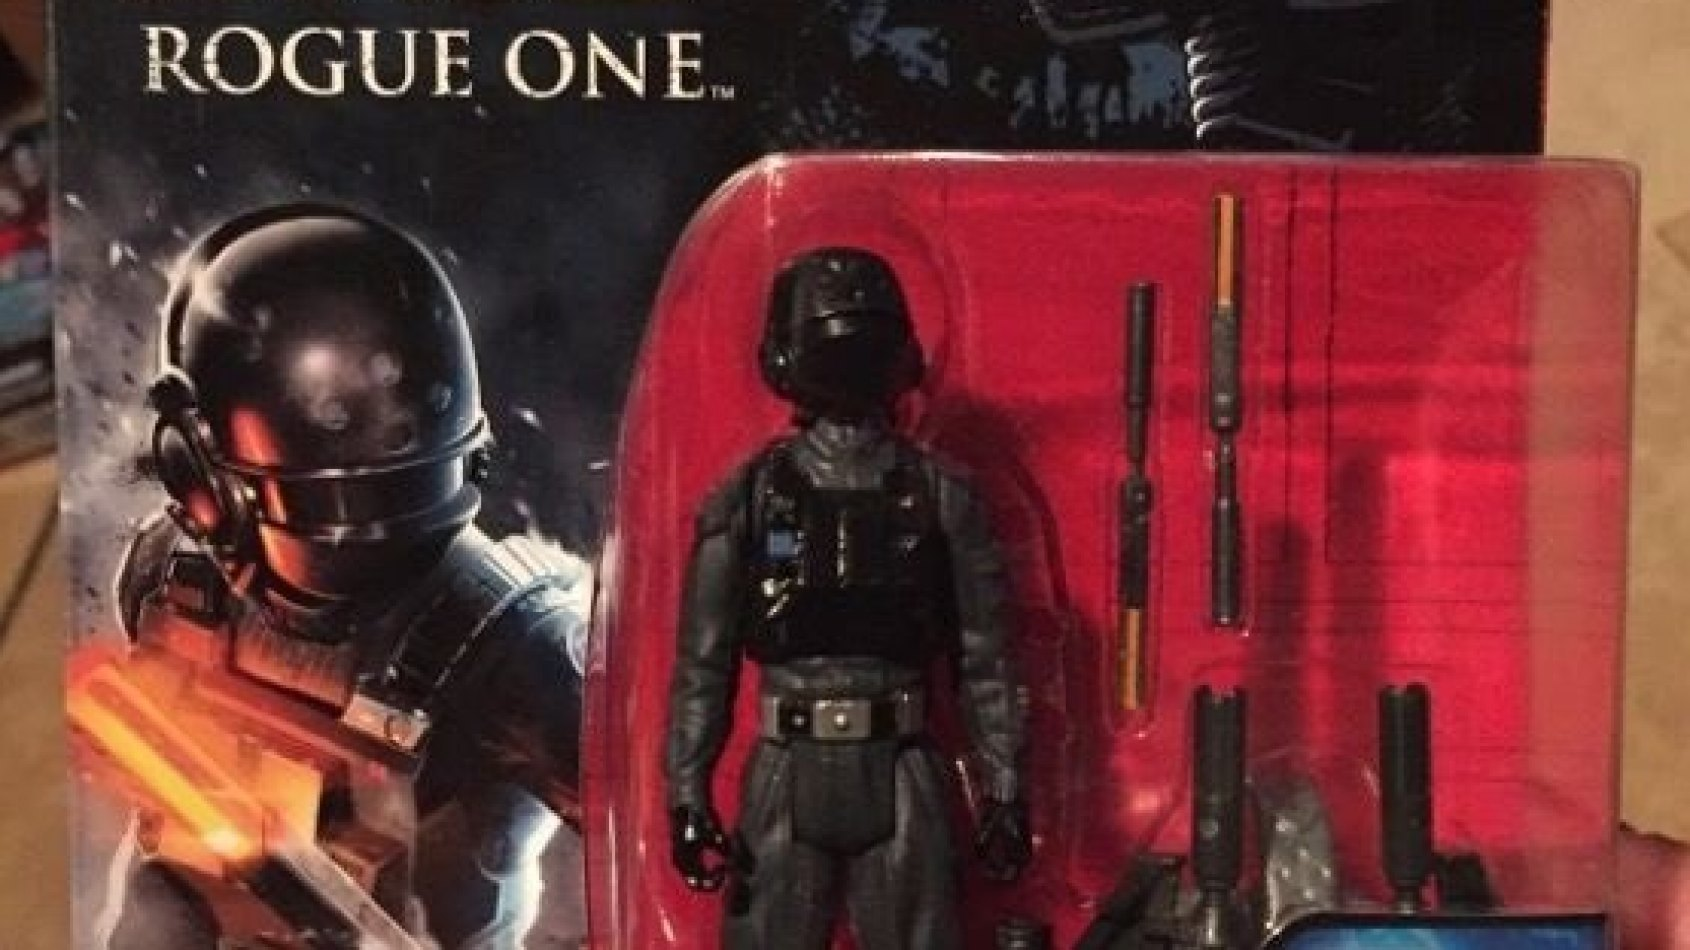 De nouvelles figurines de Rogue One d�voil�es